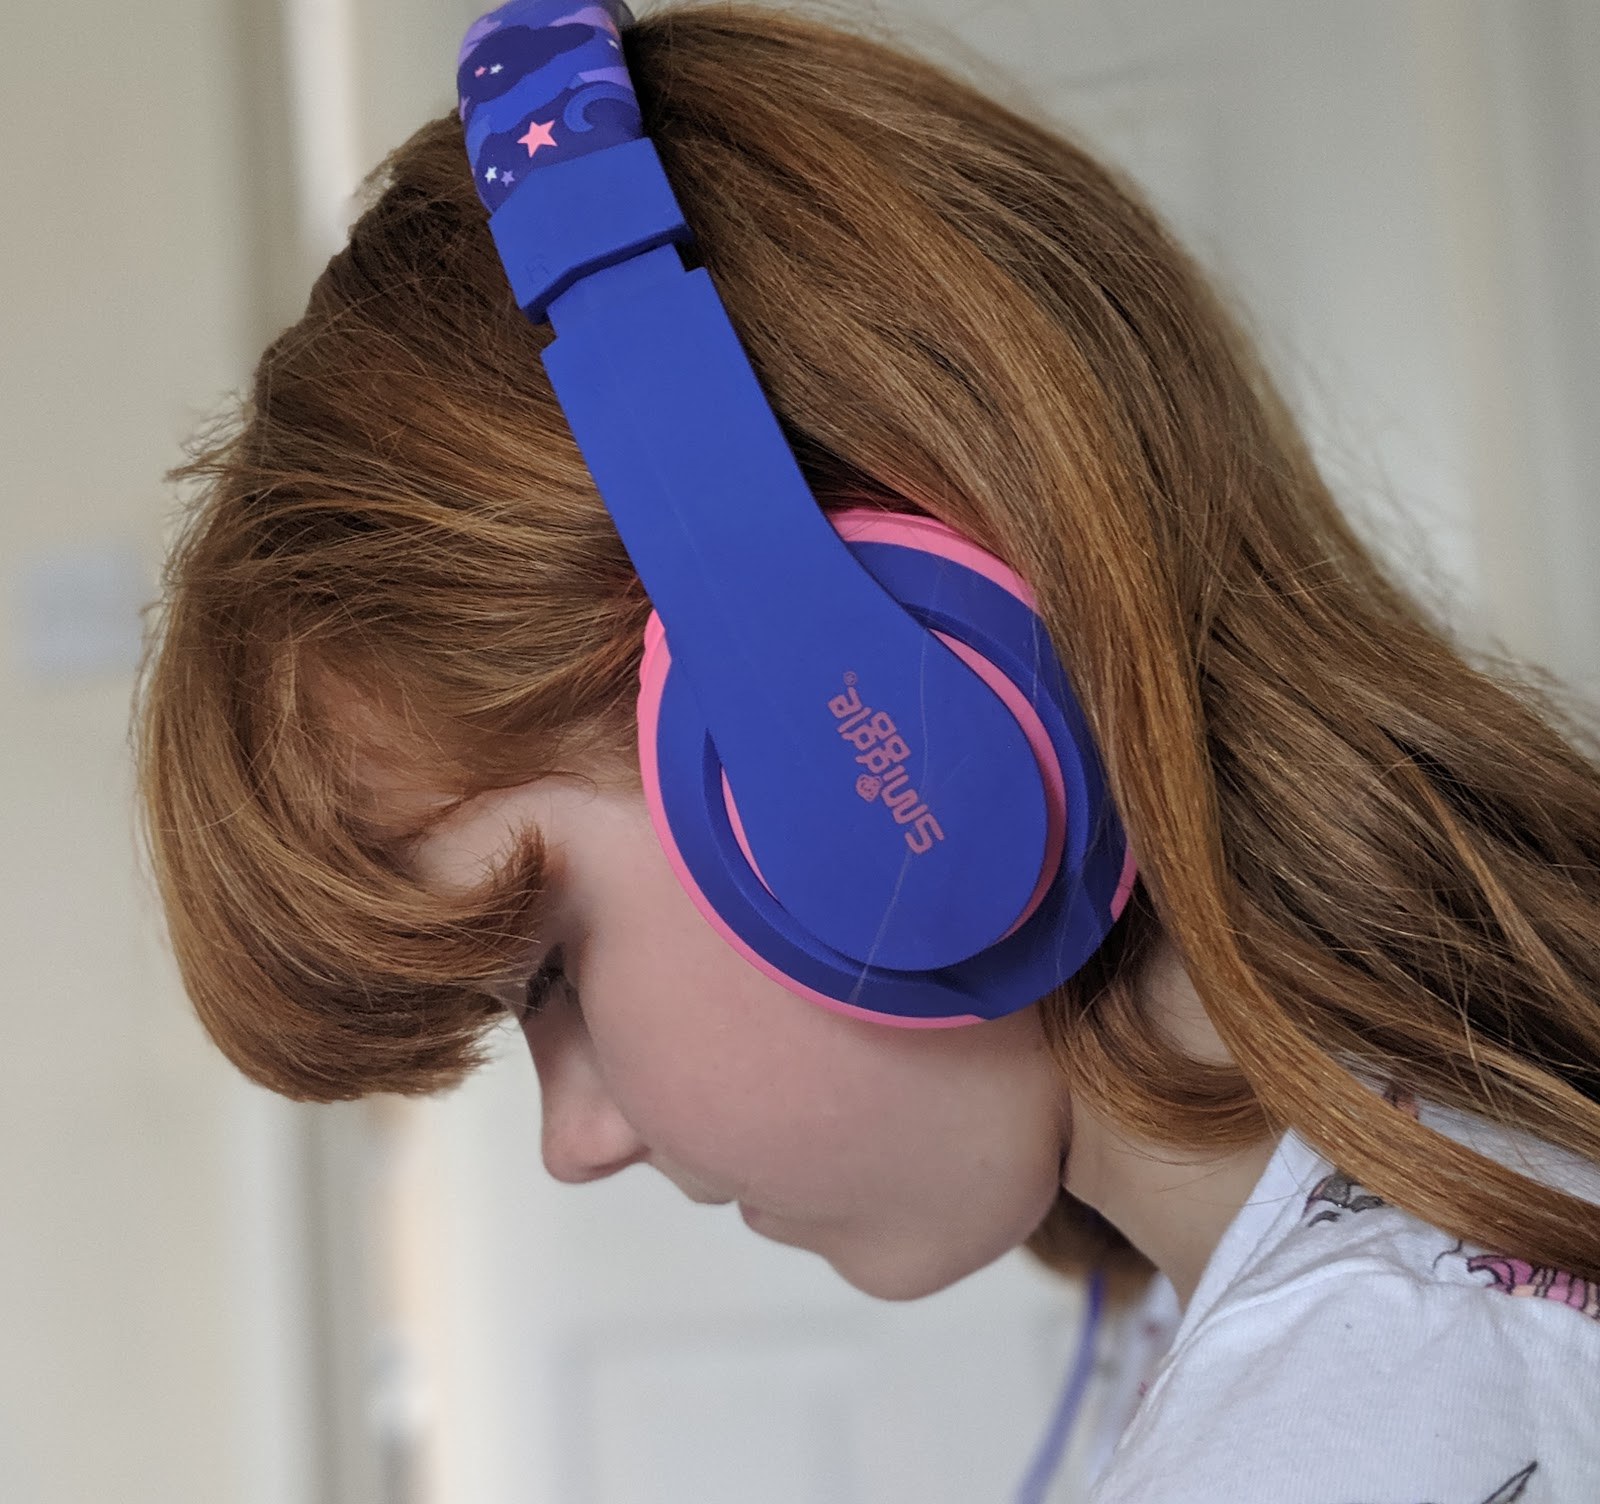 Top Tips for Surviving Year 6 at School (& Smiggle giveaway) - Smiggle Foldaway Headphones